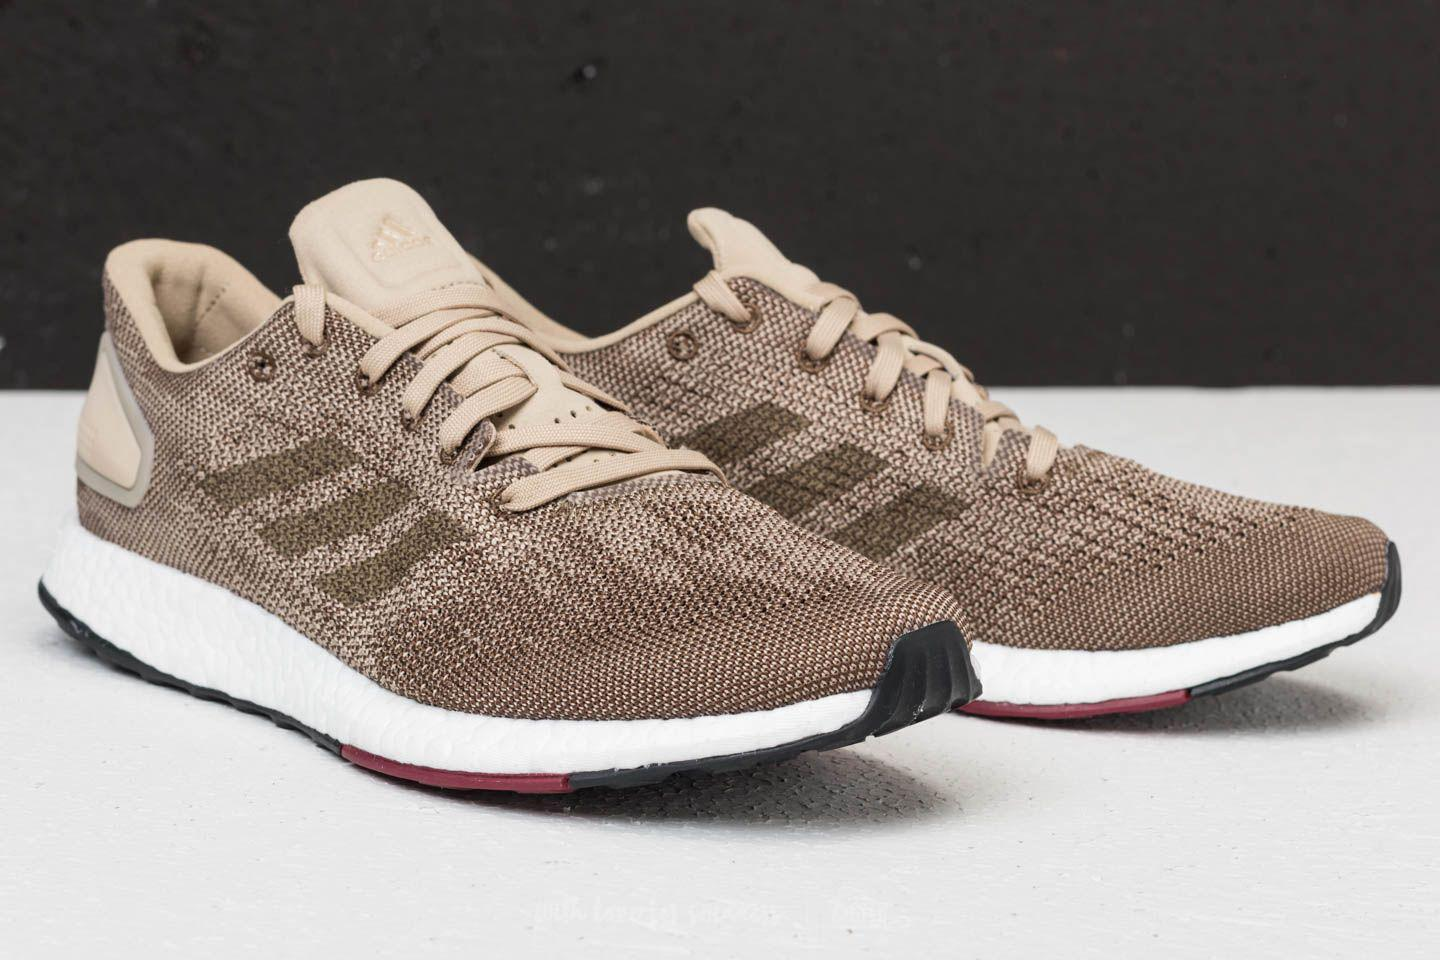 the latest 624e2 62c32 closeout adidas pureboost dpr brown raw gold trace olive collegiate  burgundy running 18553 1dad7  official view fullscreen 2ab6f 490f6